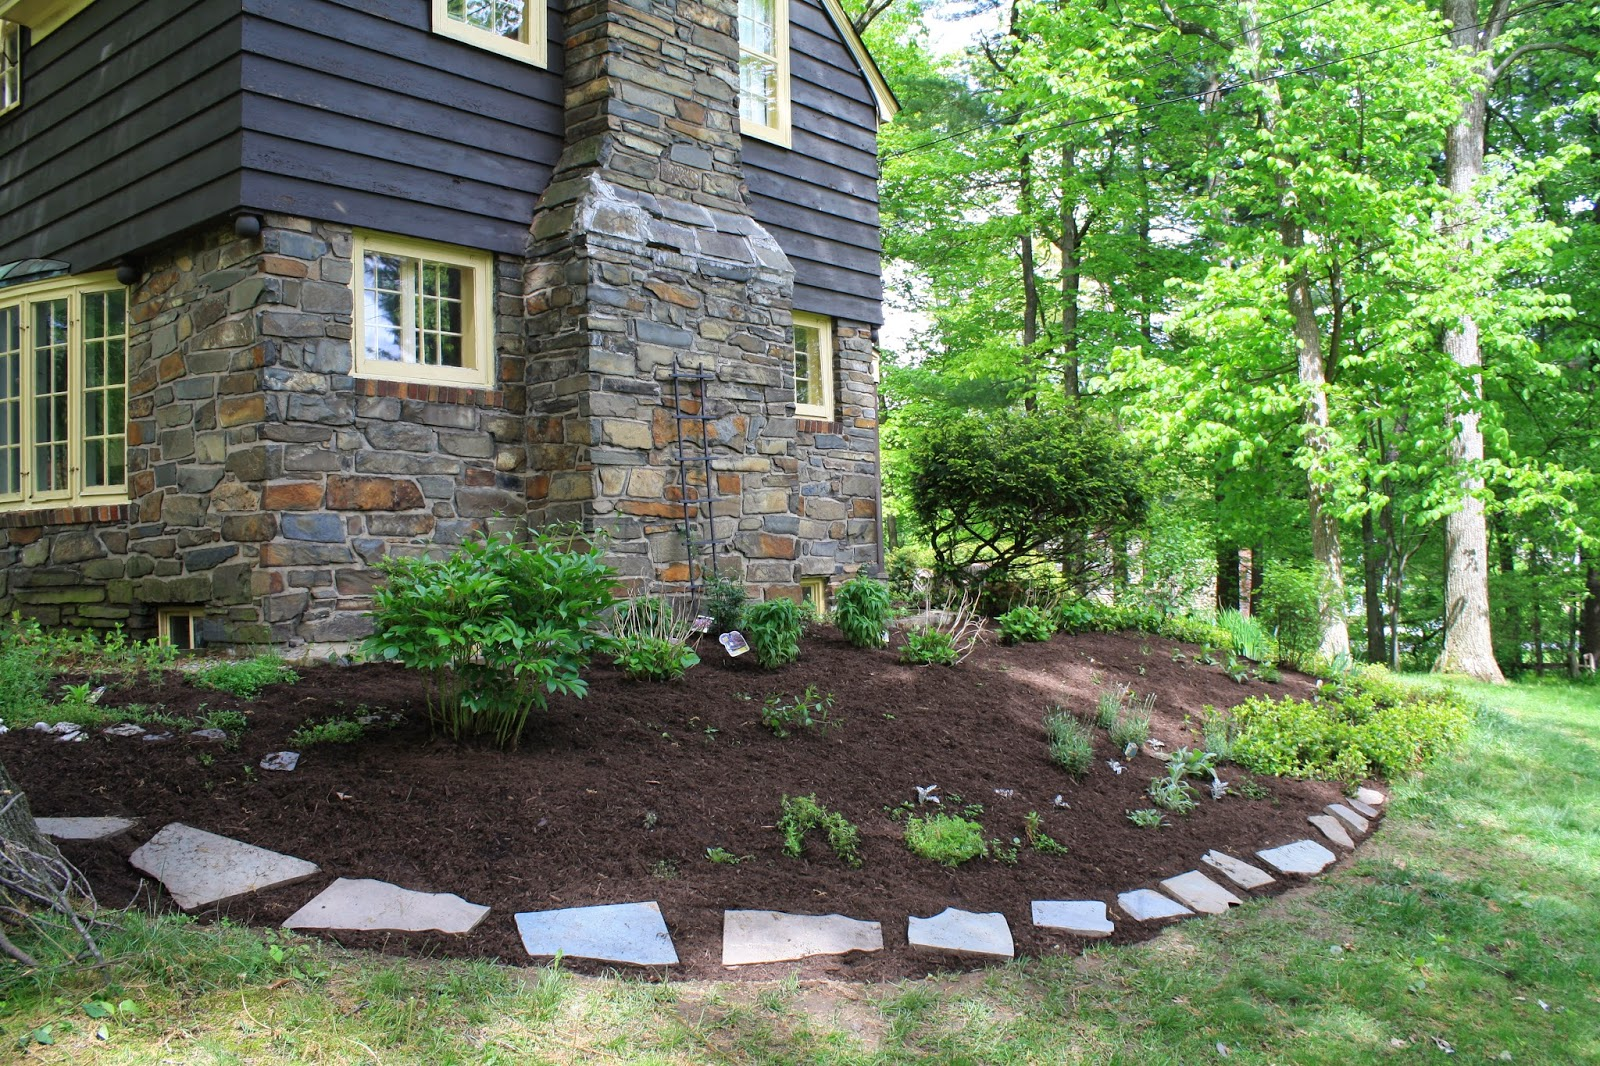 Mulch Bed with Slates